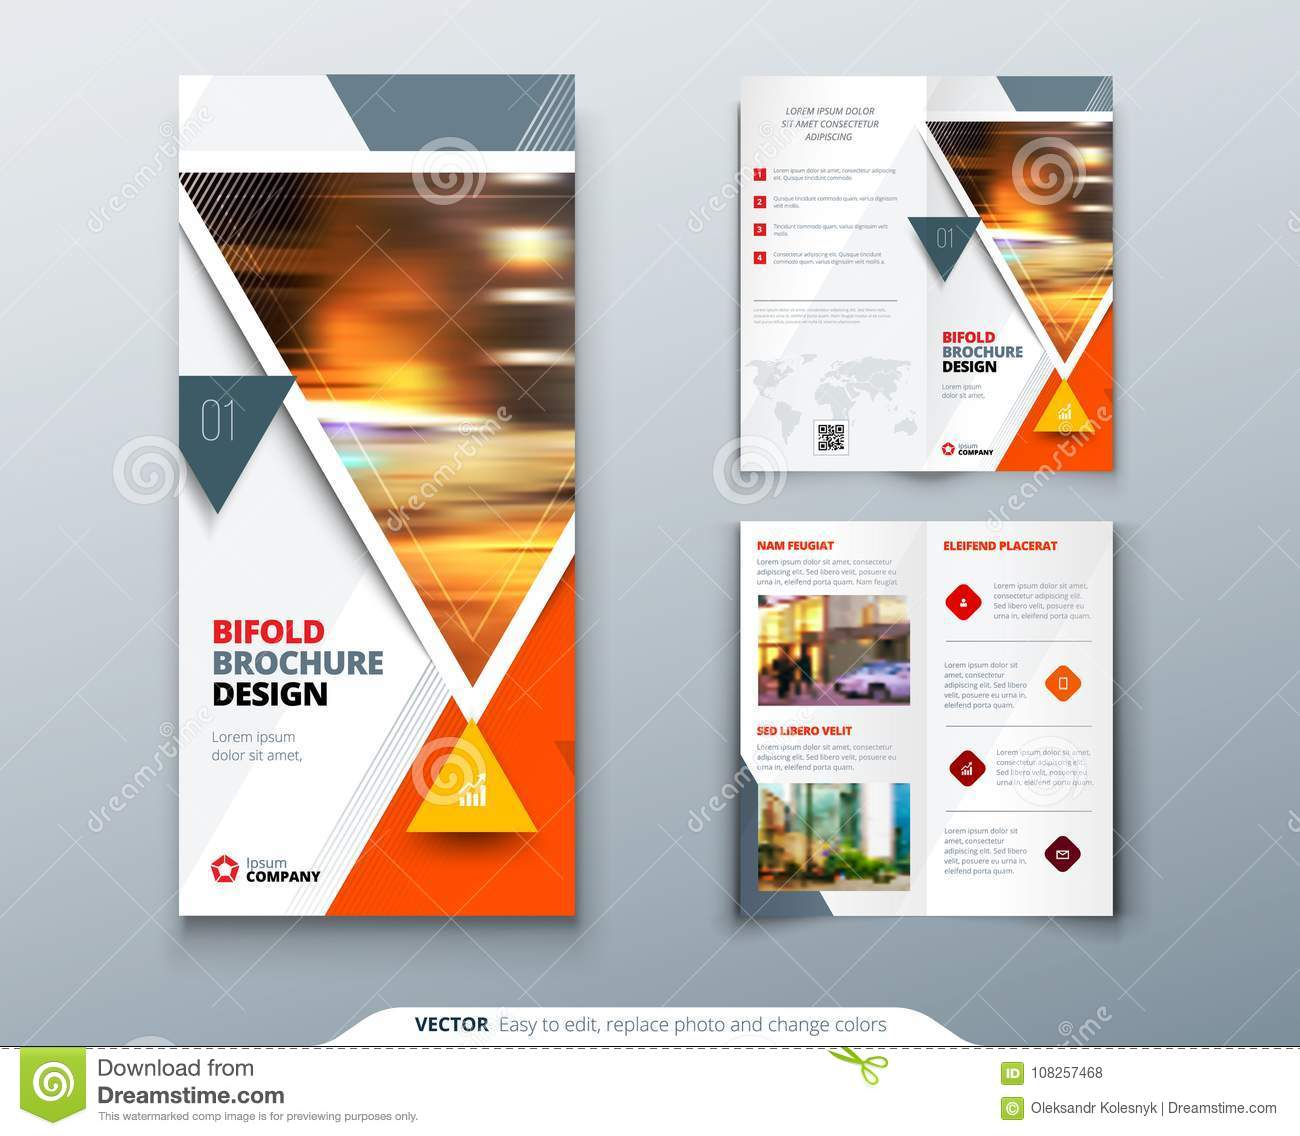 bifold brochure design red orange template for bi fold flyer